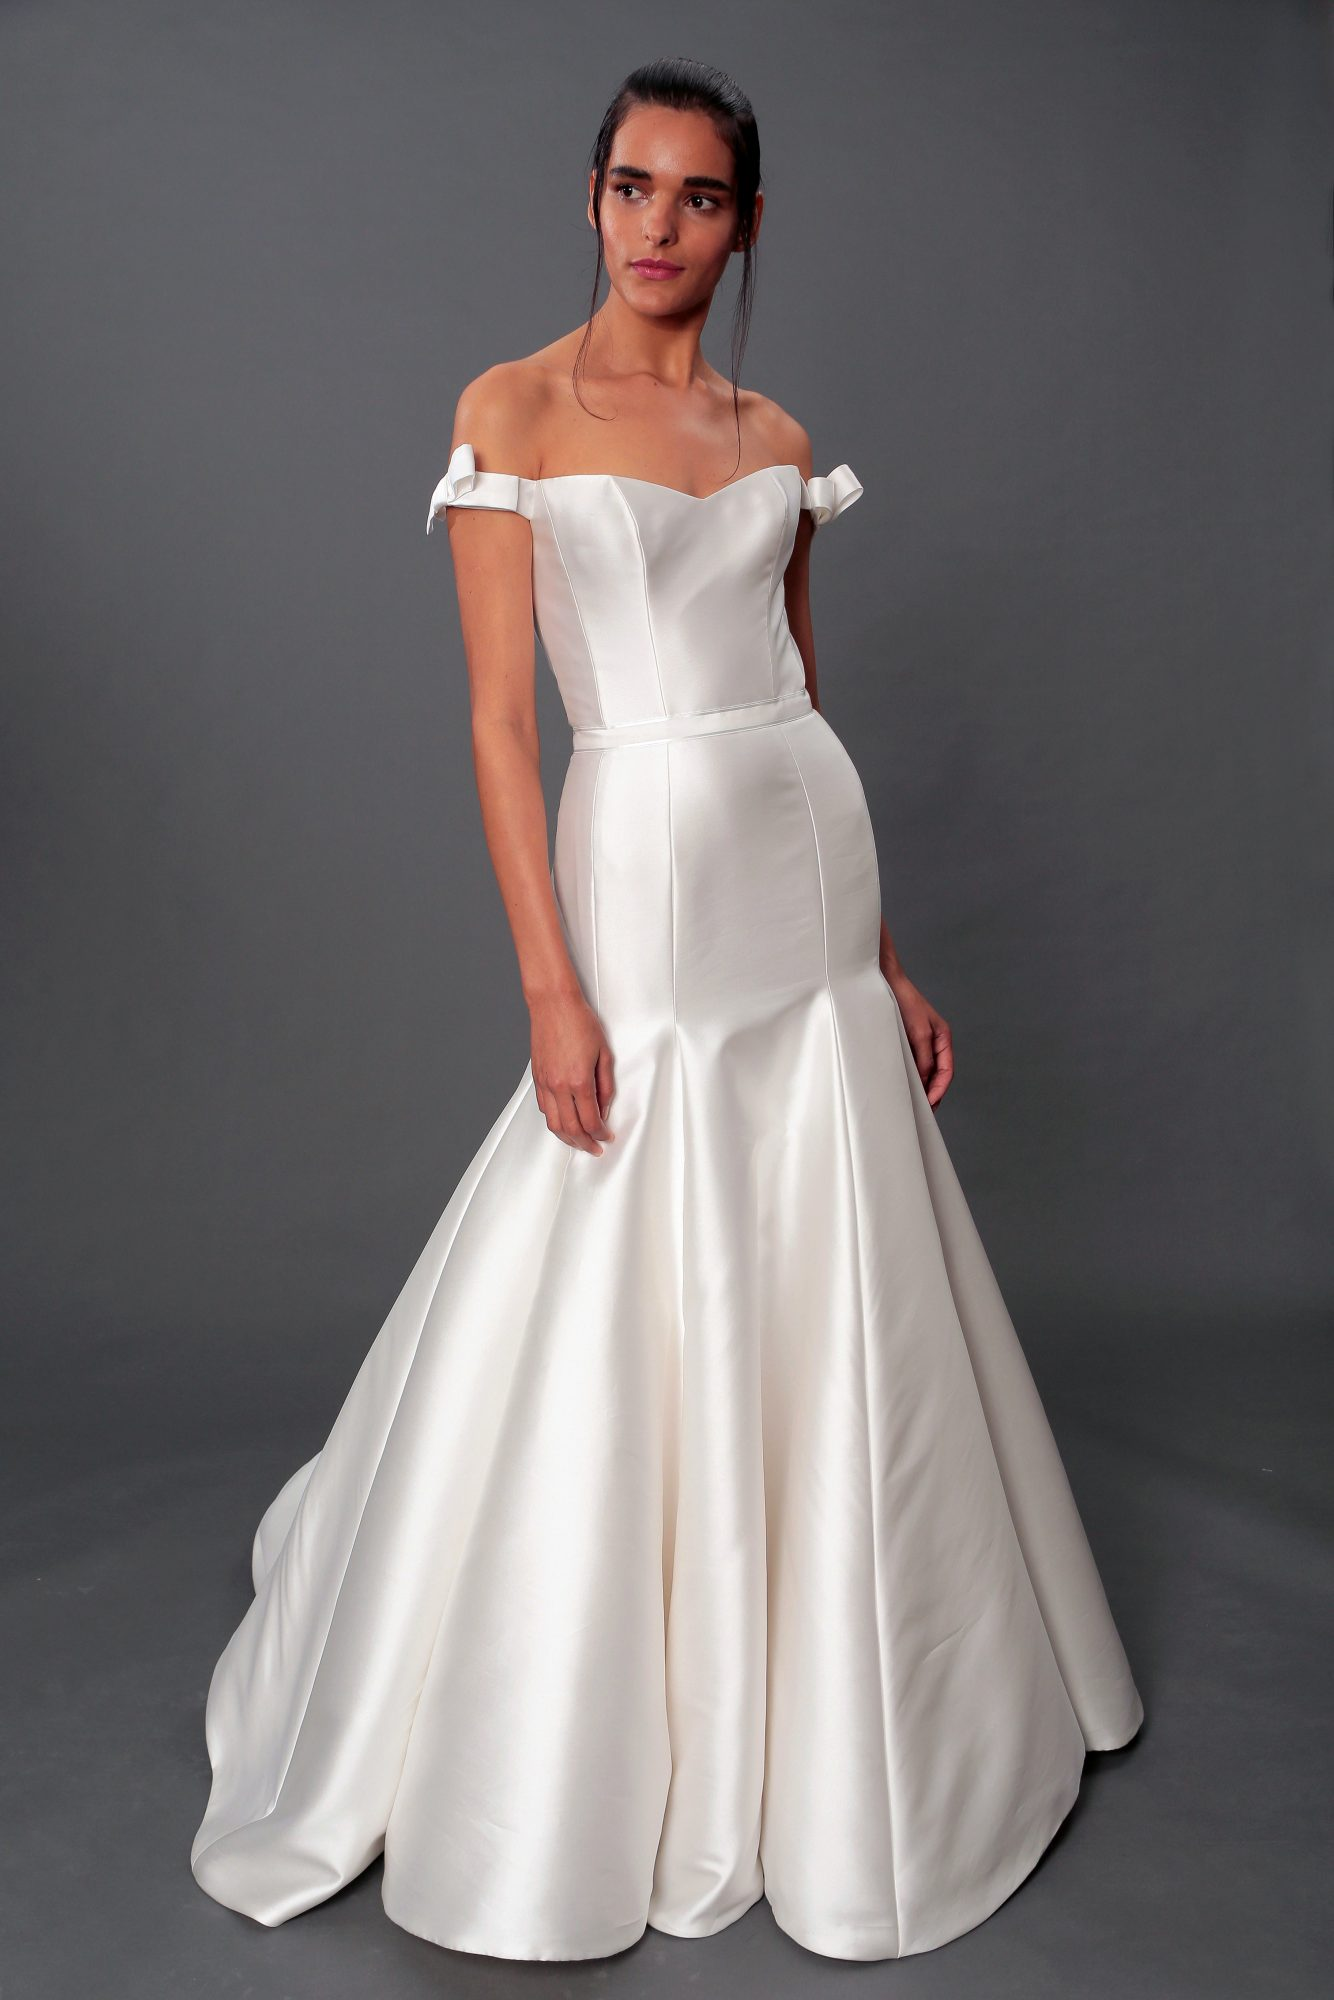 isabelle armstrong fall 2019 over the shoulder trumpet wedding dress